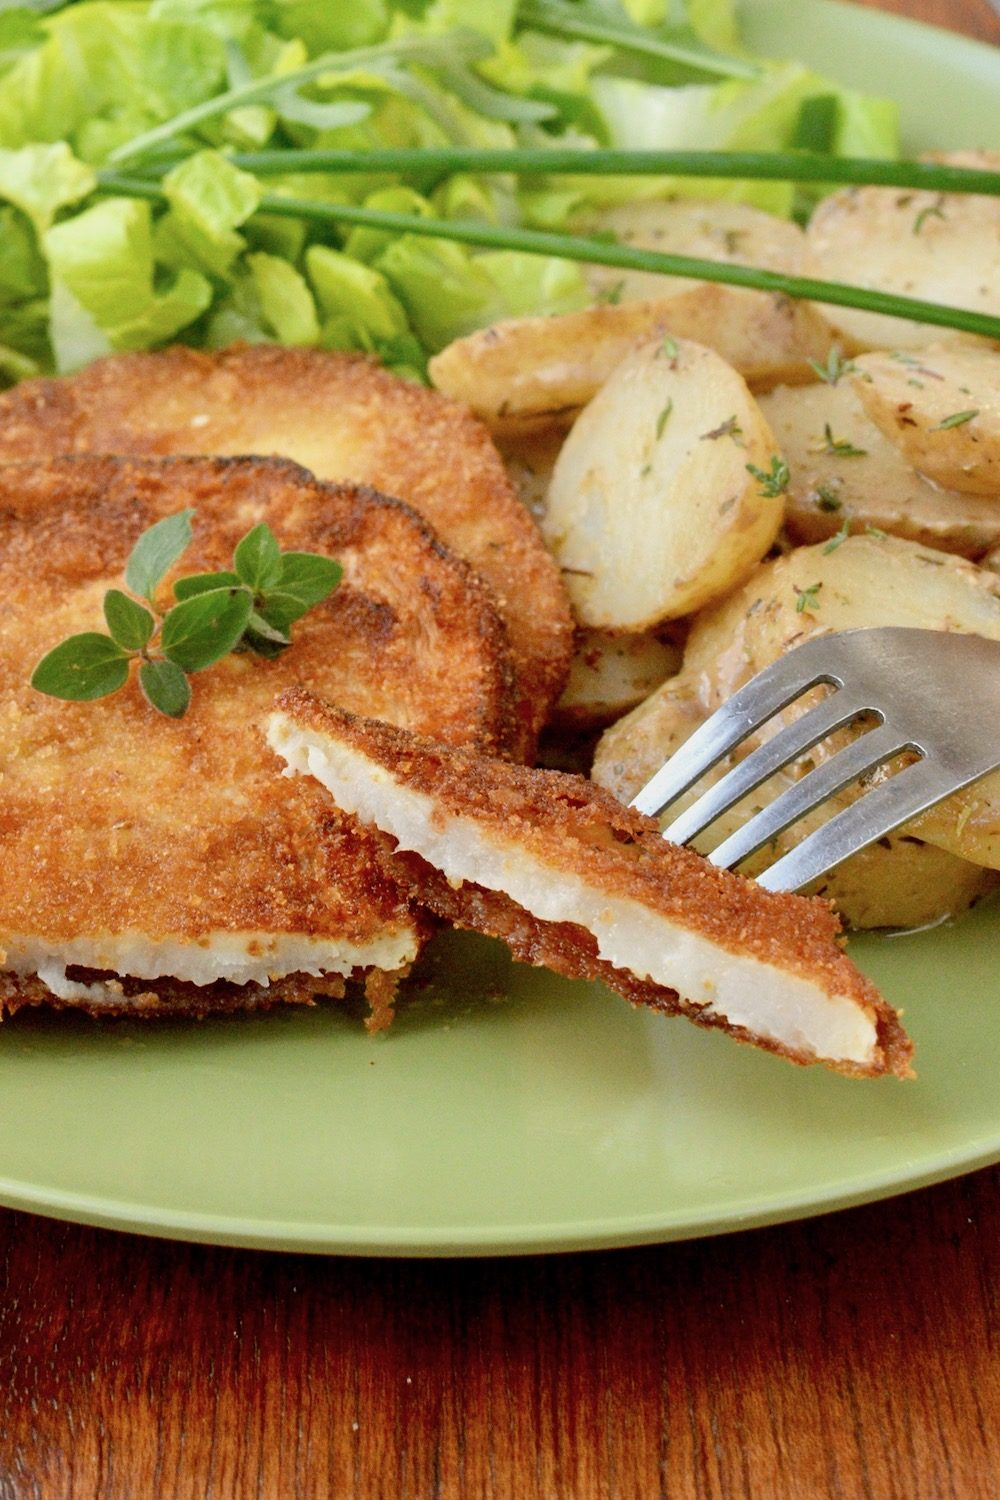 A slice of schnitzel reveals the tender, white inside.